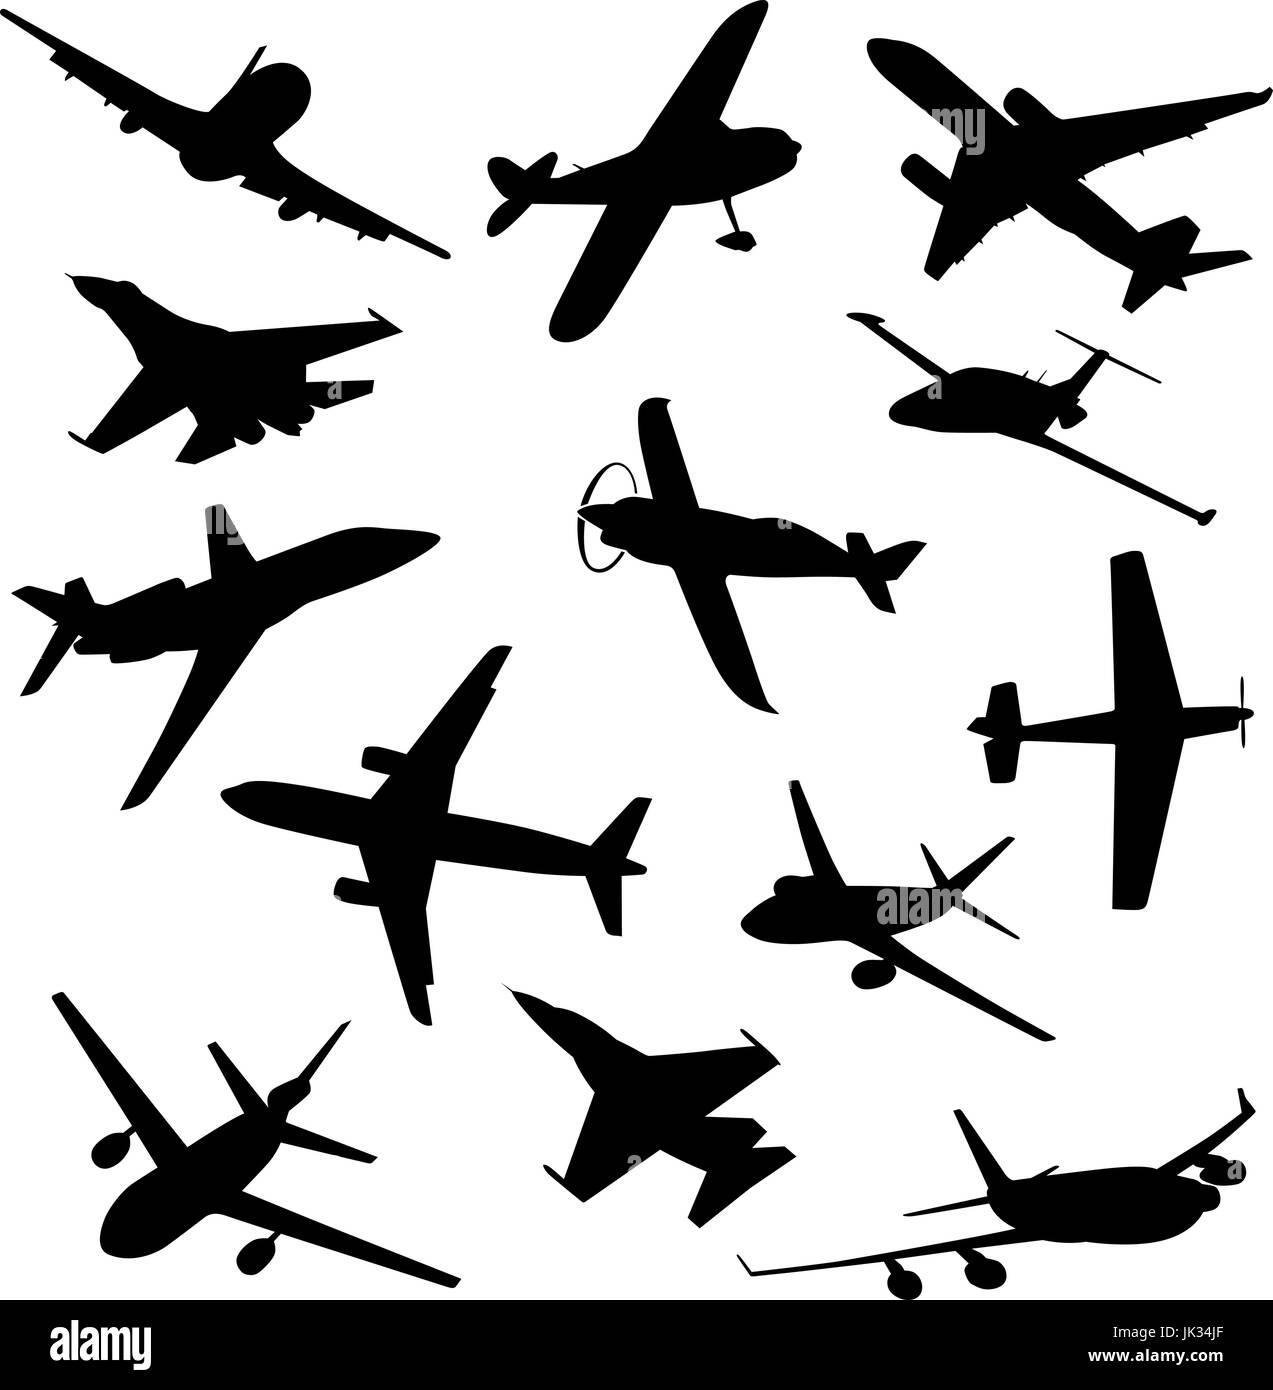 Big collection of different airplane silhouettes. vector plane - Stock Image